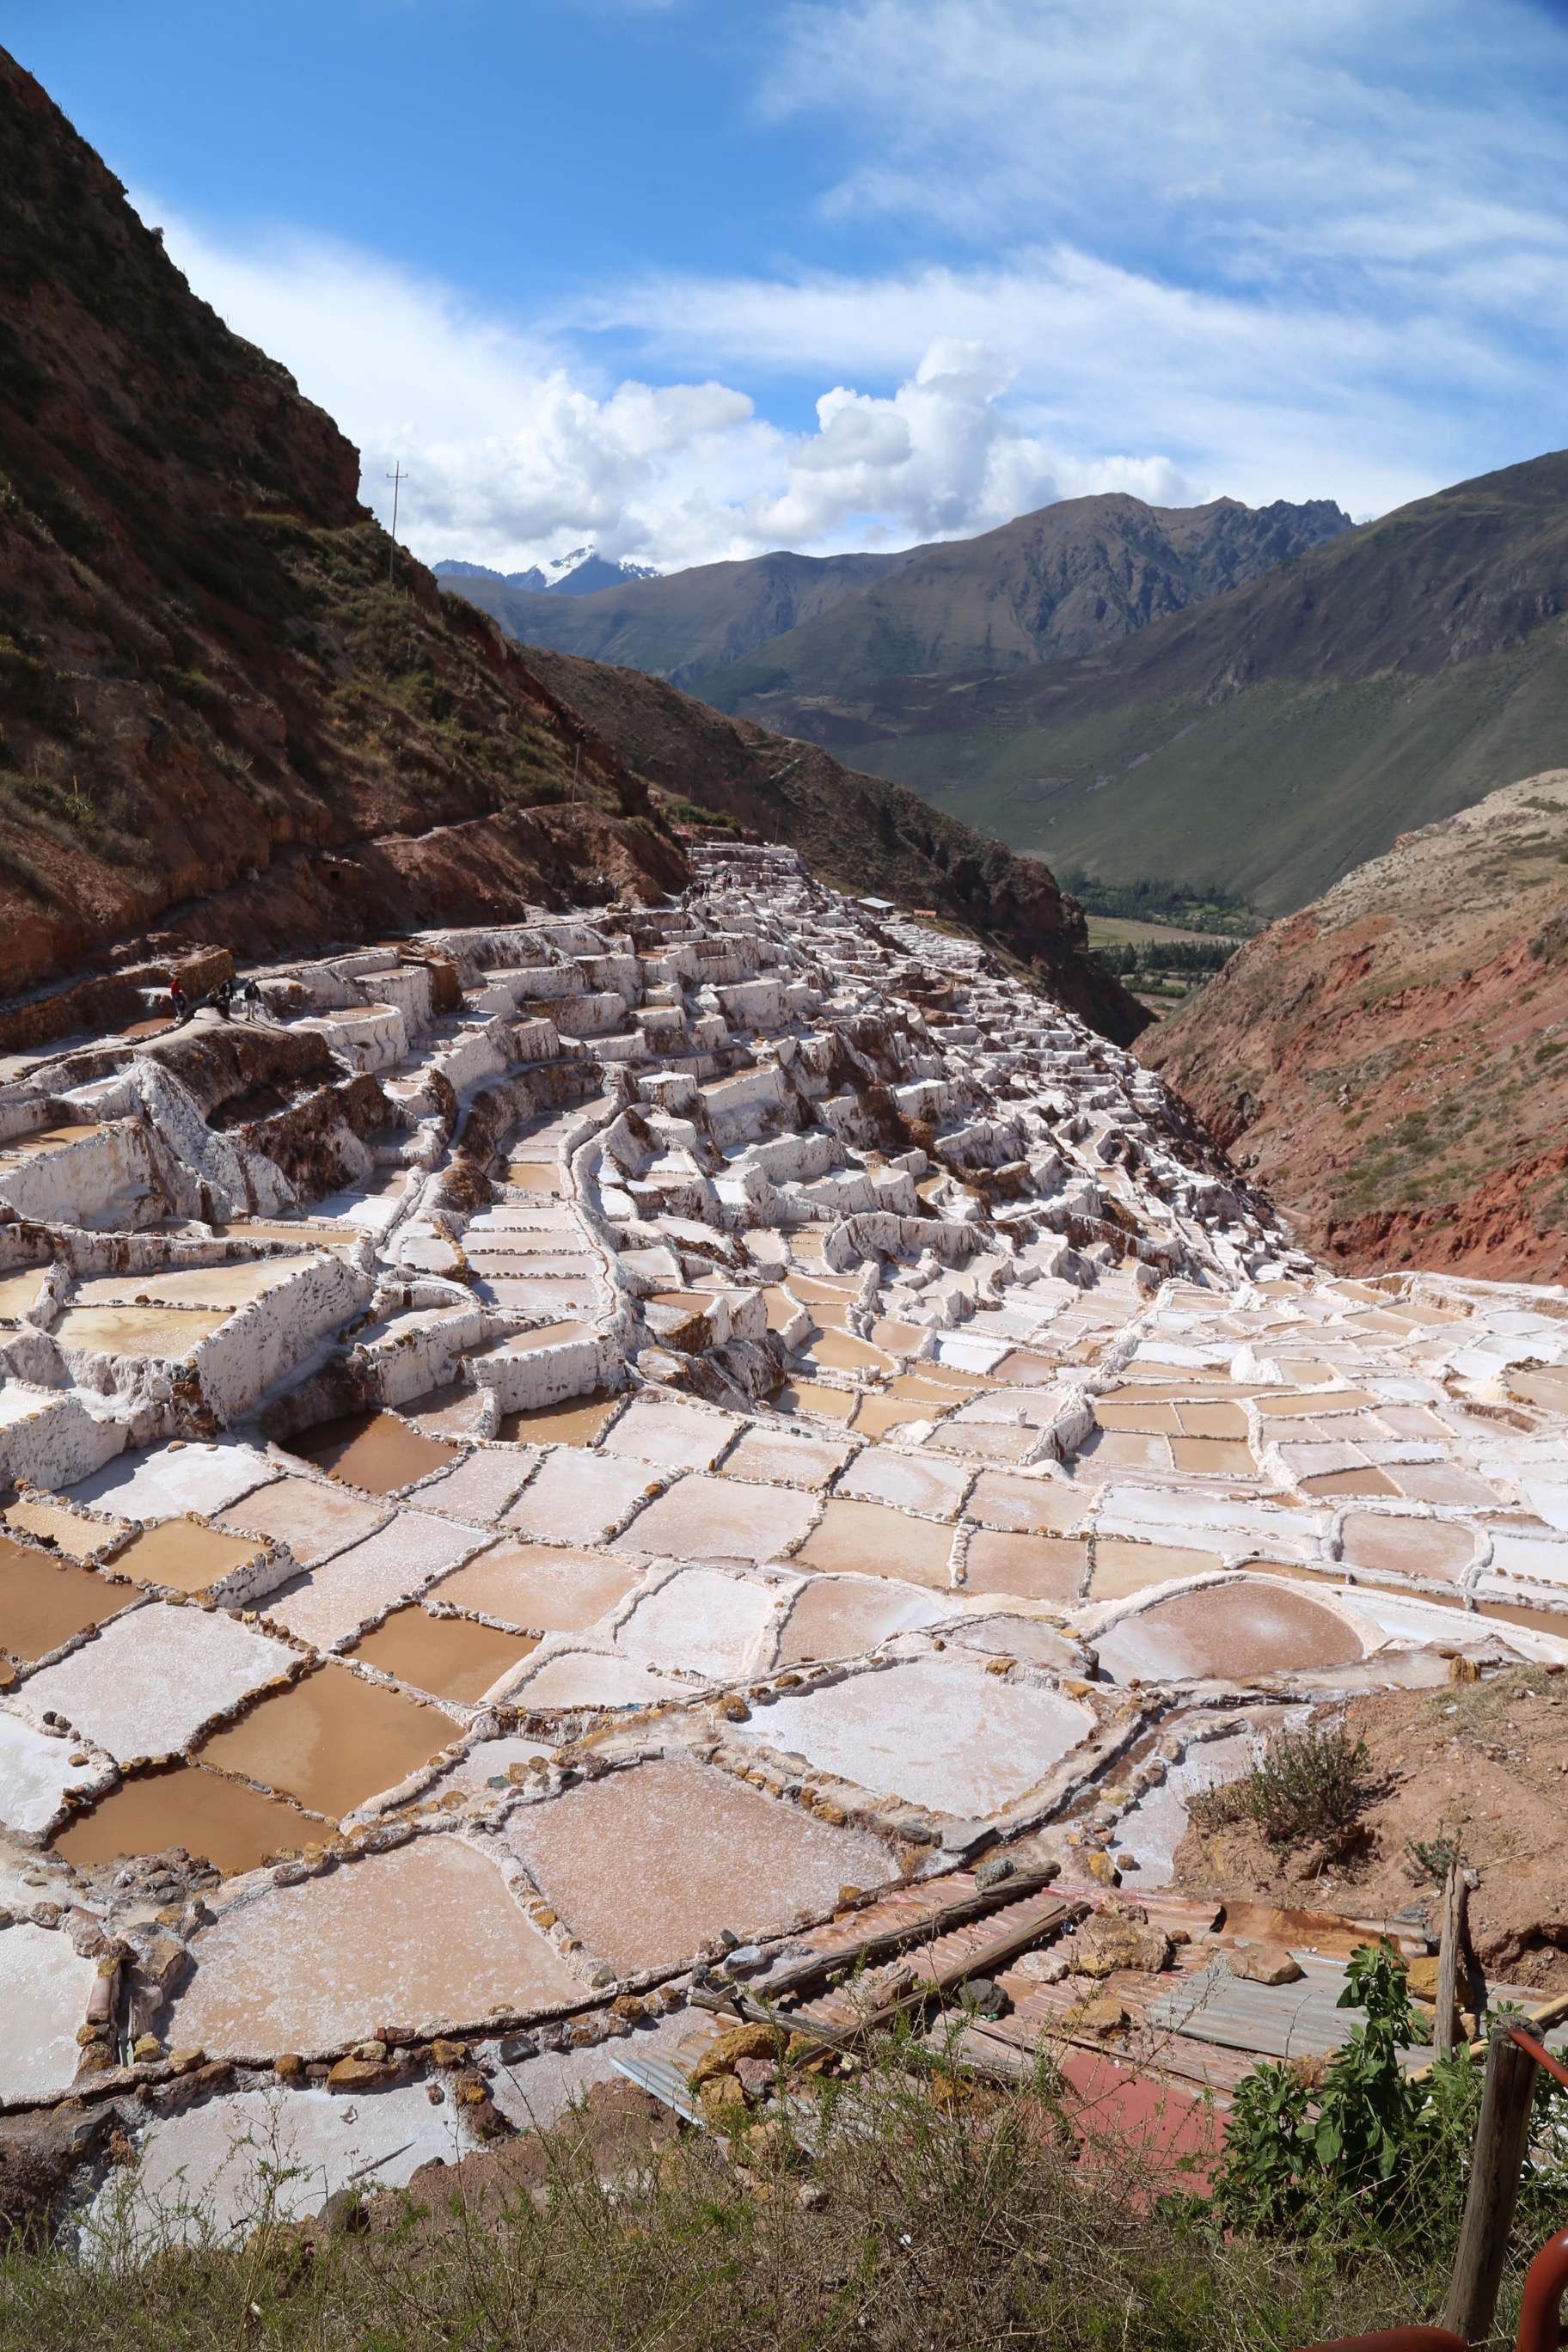 High up in the Andes Moutains, in the upper reaches of Peru's Sacred Valley, the salt works of Maras have been producing this essential compound for centuries.